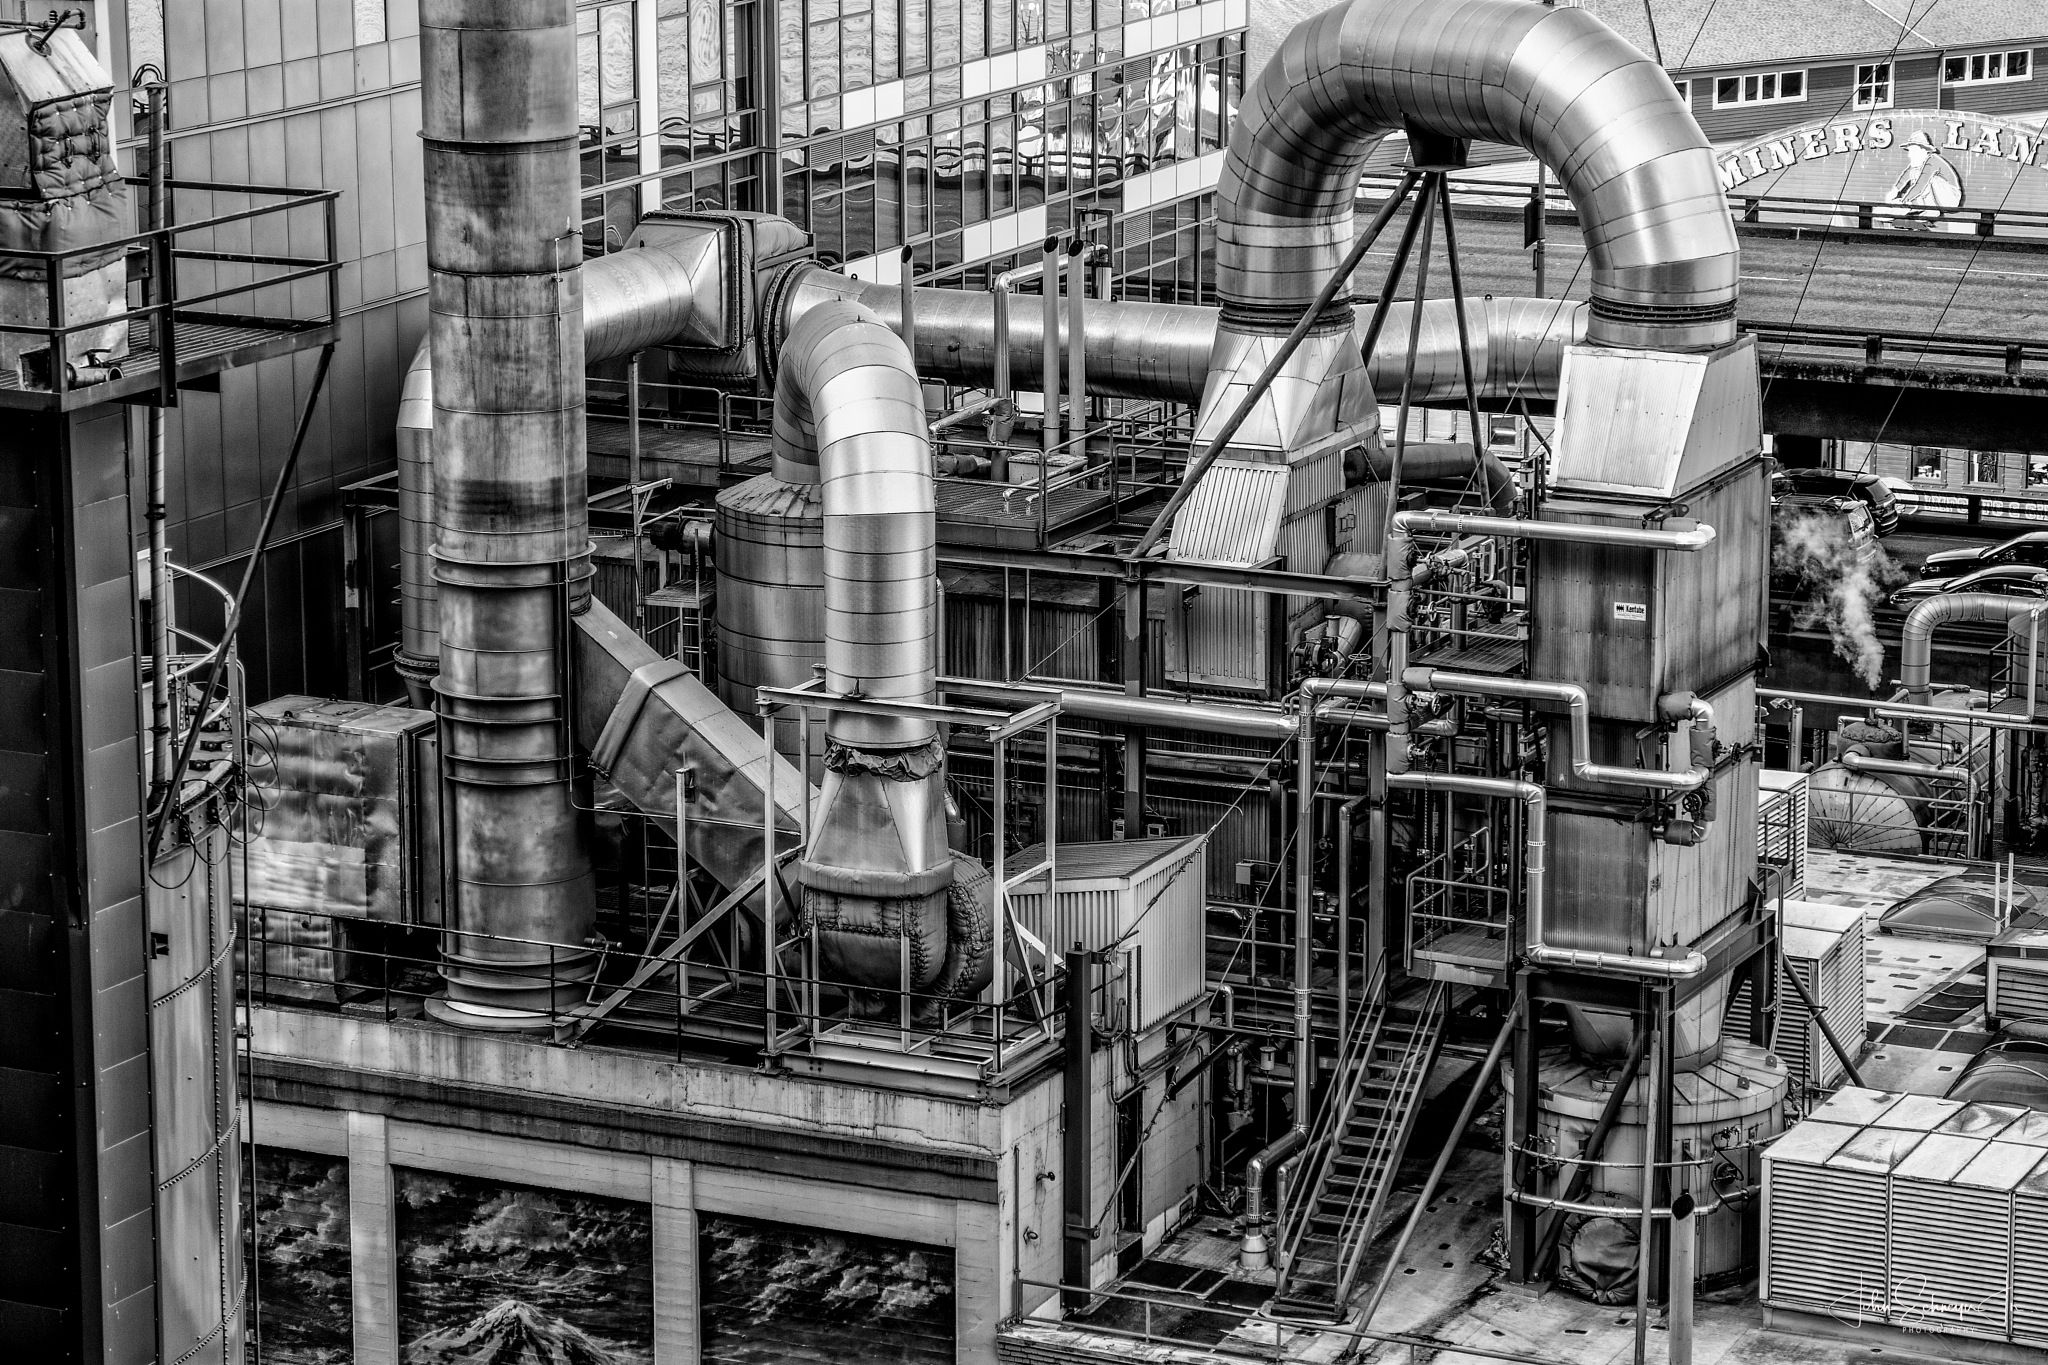 Industrial Plant by John Schneyer